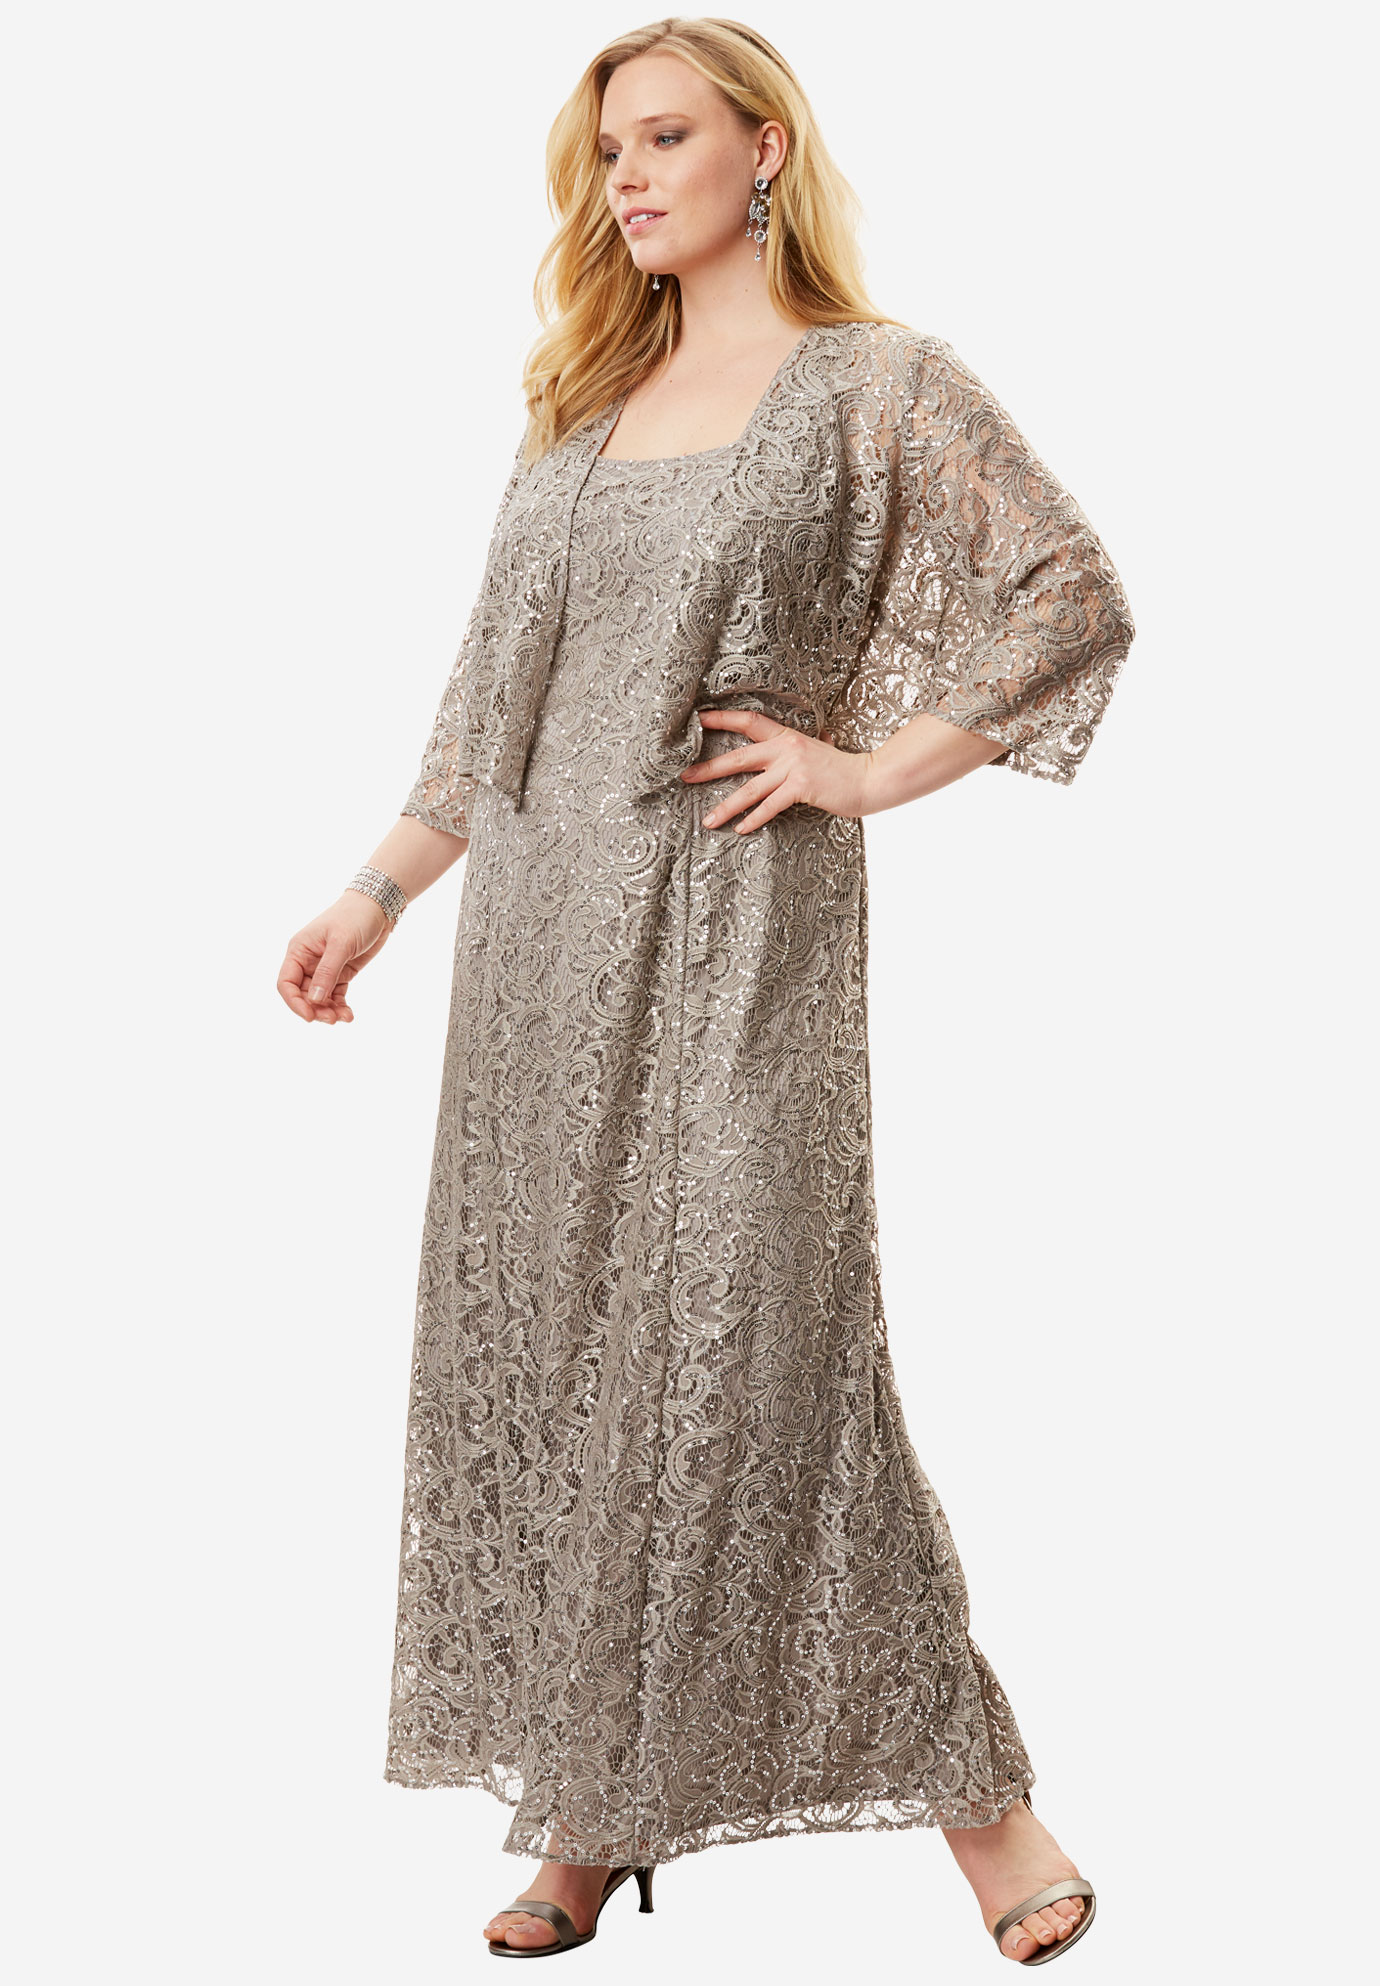 Fit-And-Flare Lace Jacket Dress by Alex Evenings | Plus Size Evening ...